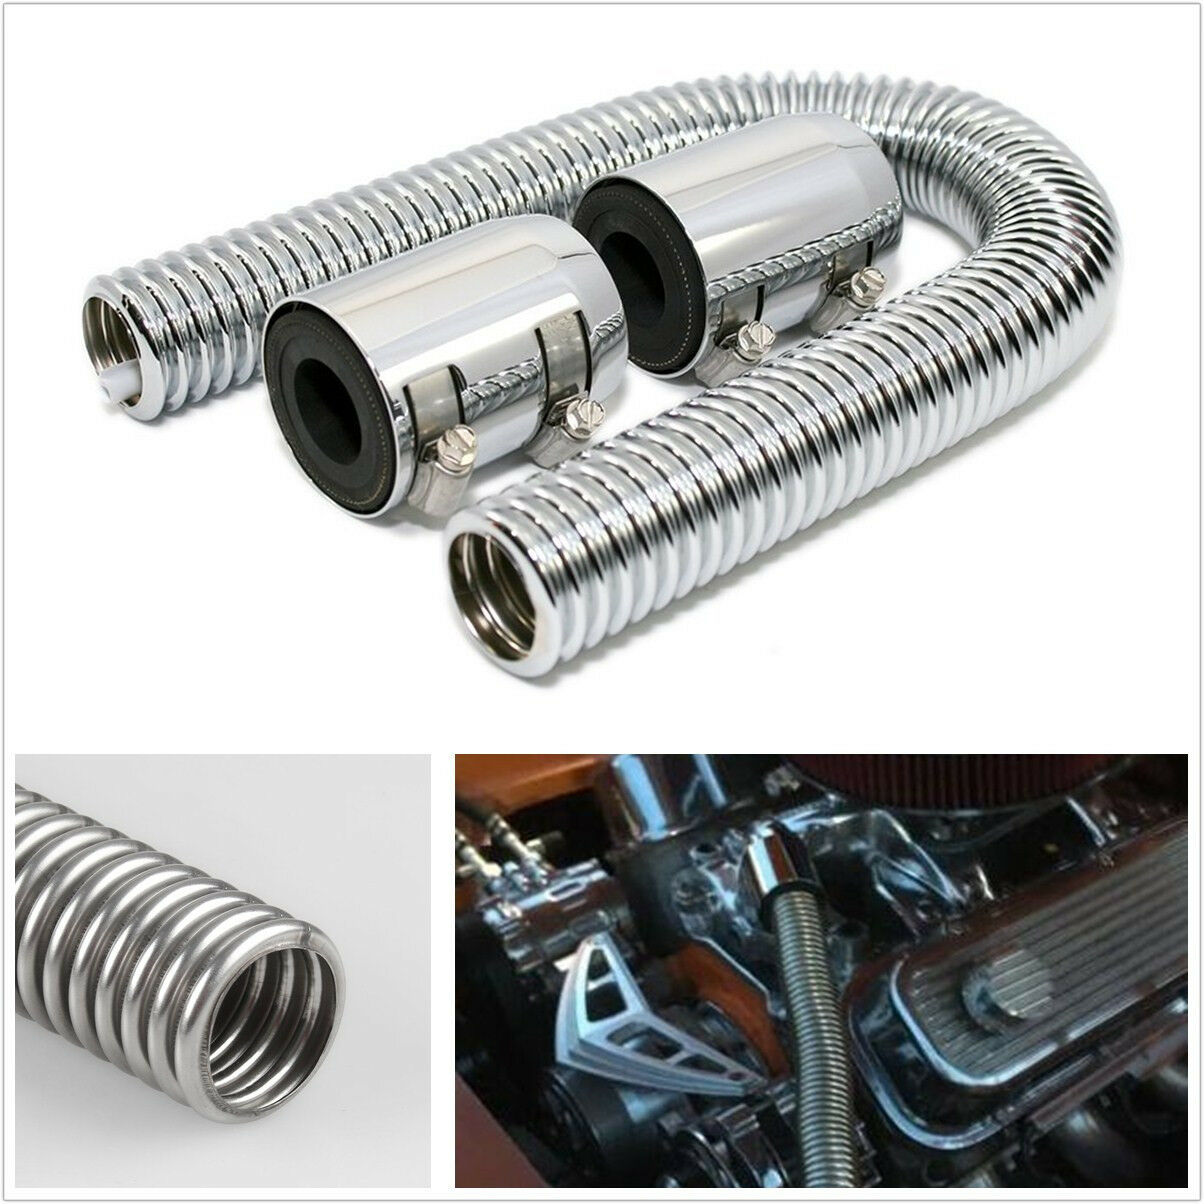 24 Inches Chrome Autos Off-Road Stainless Steel Radiator Coolant Water Hose Kit